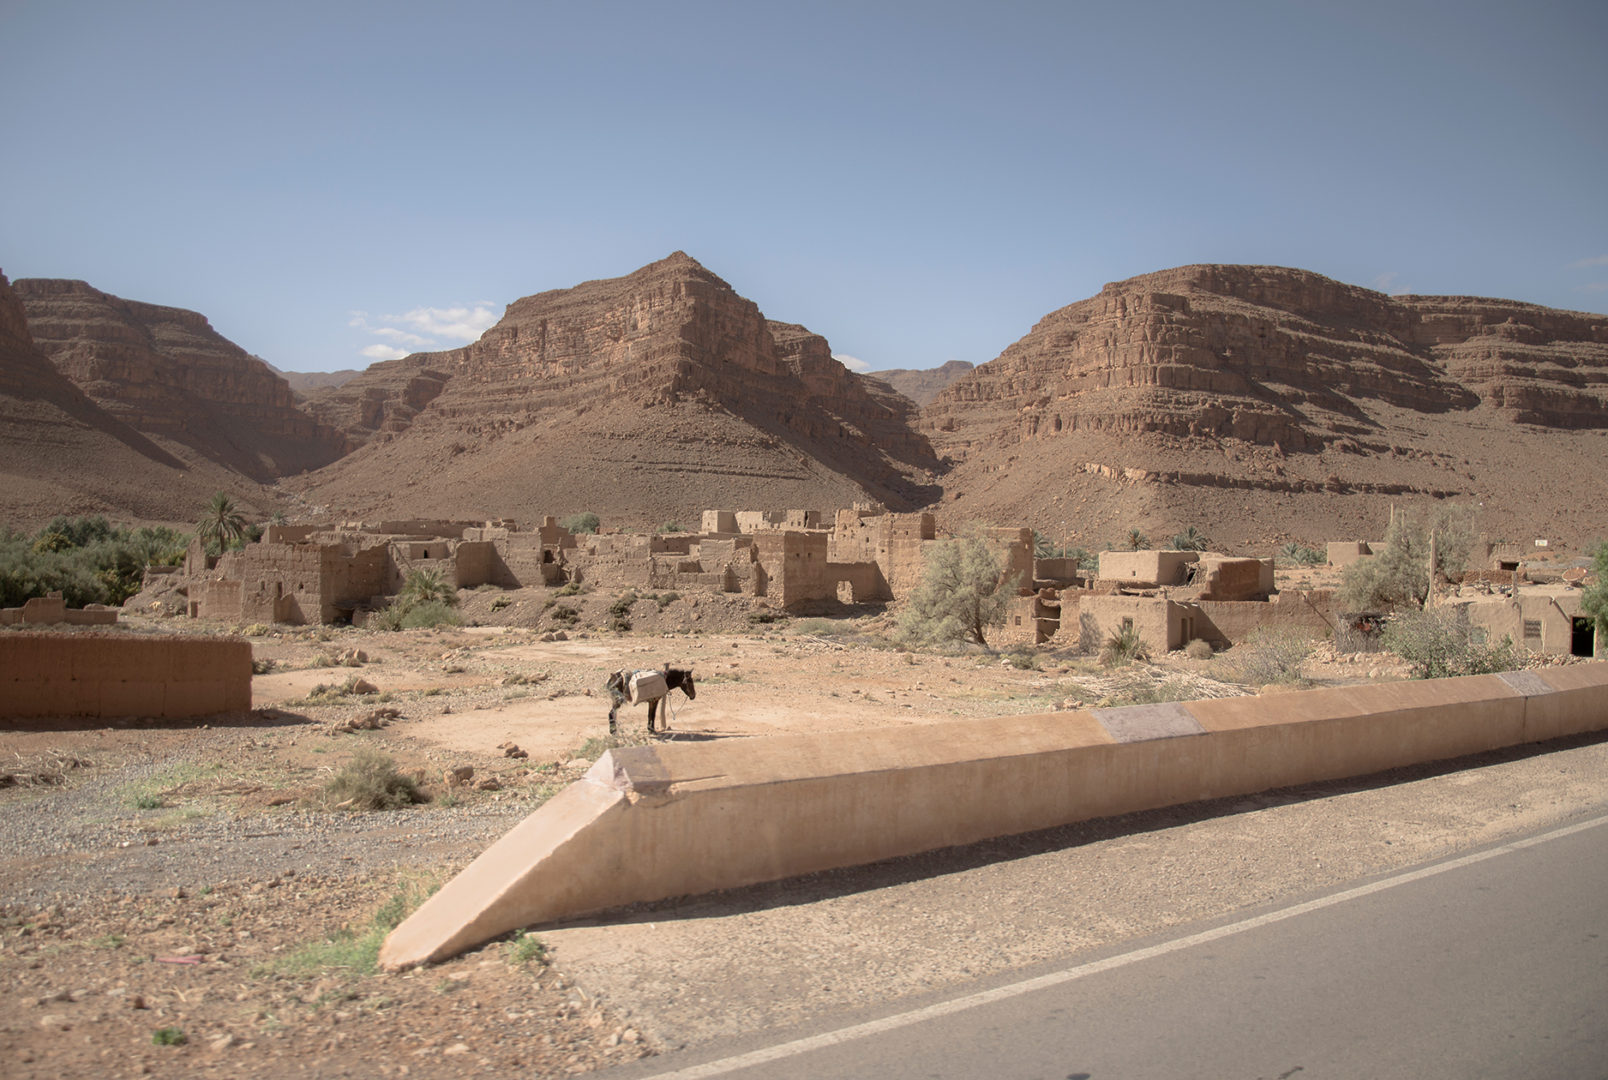 A donkey in the village in the Atlas Mountains of Morocco